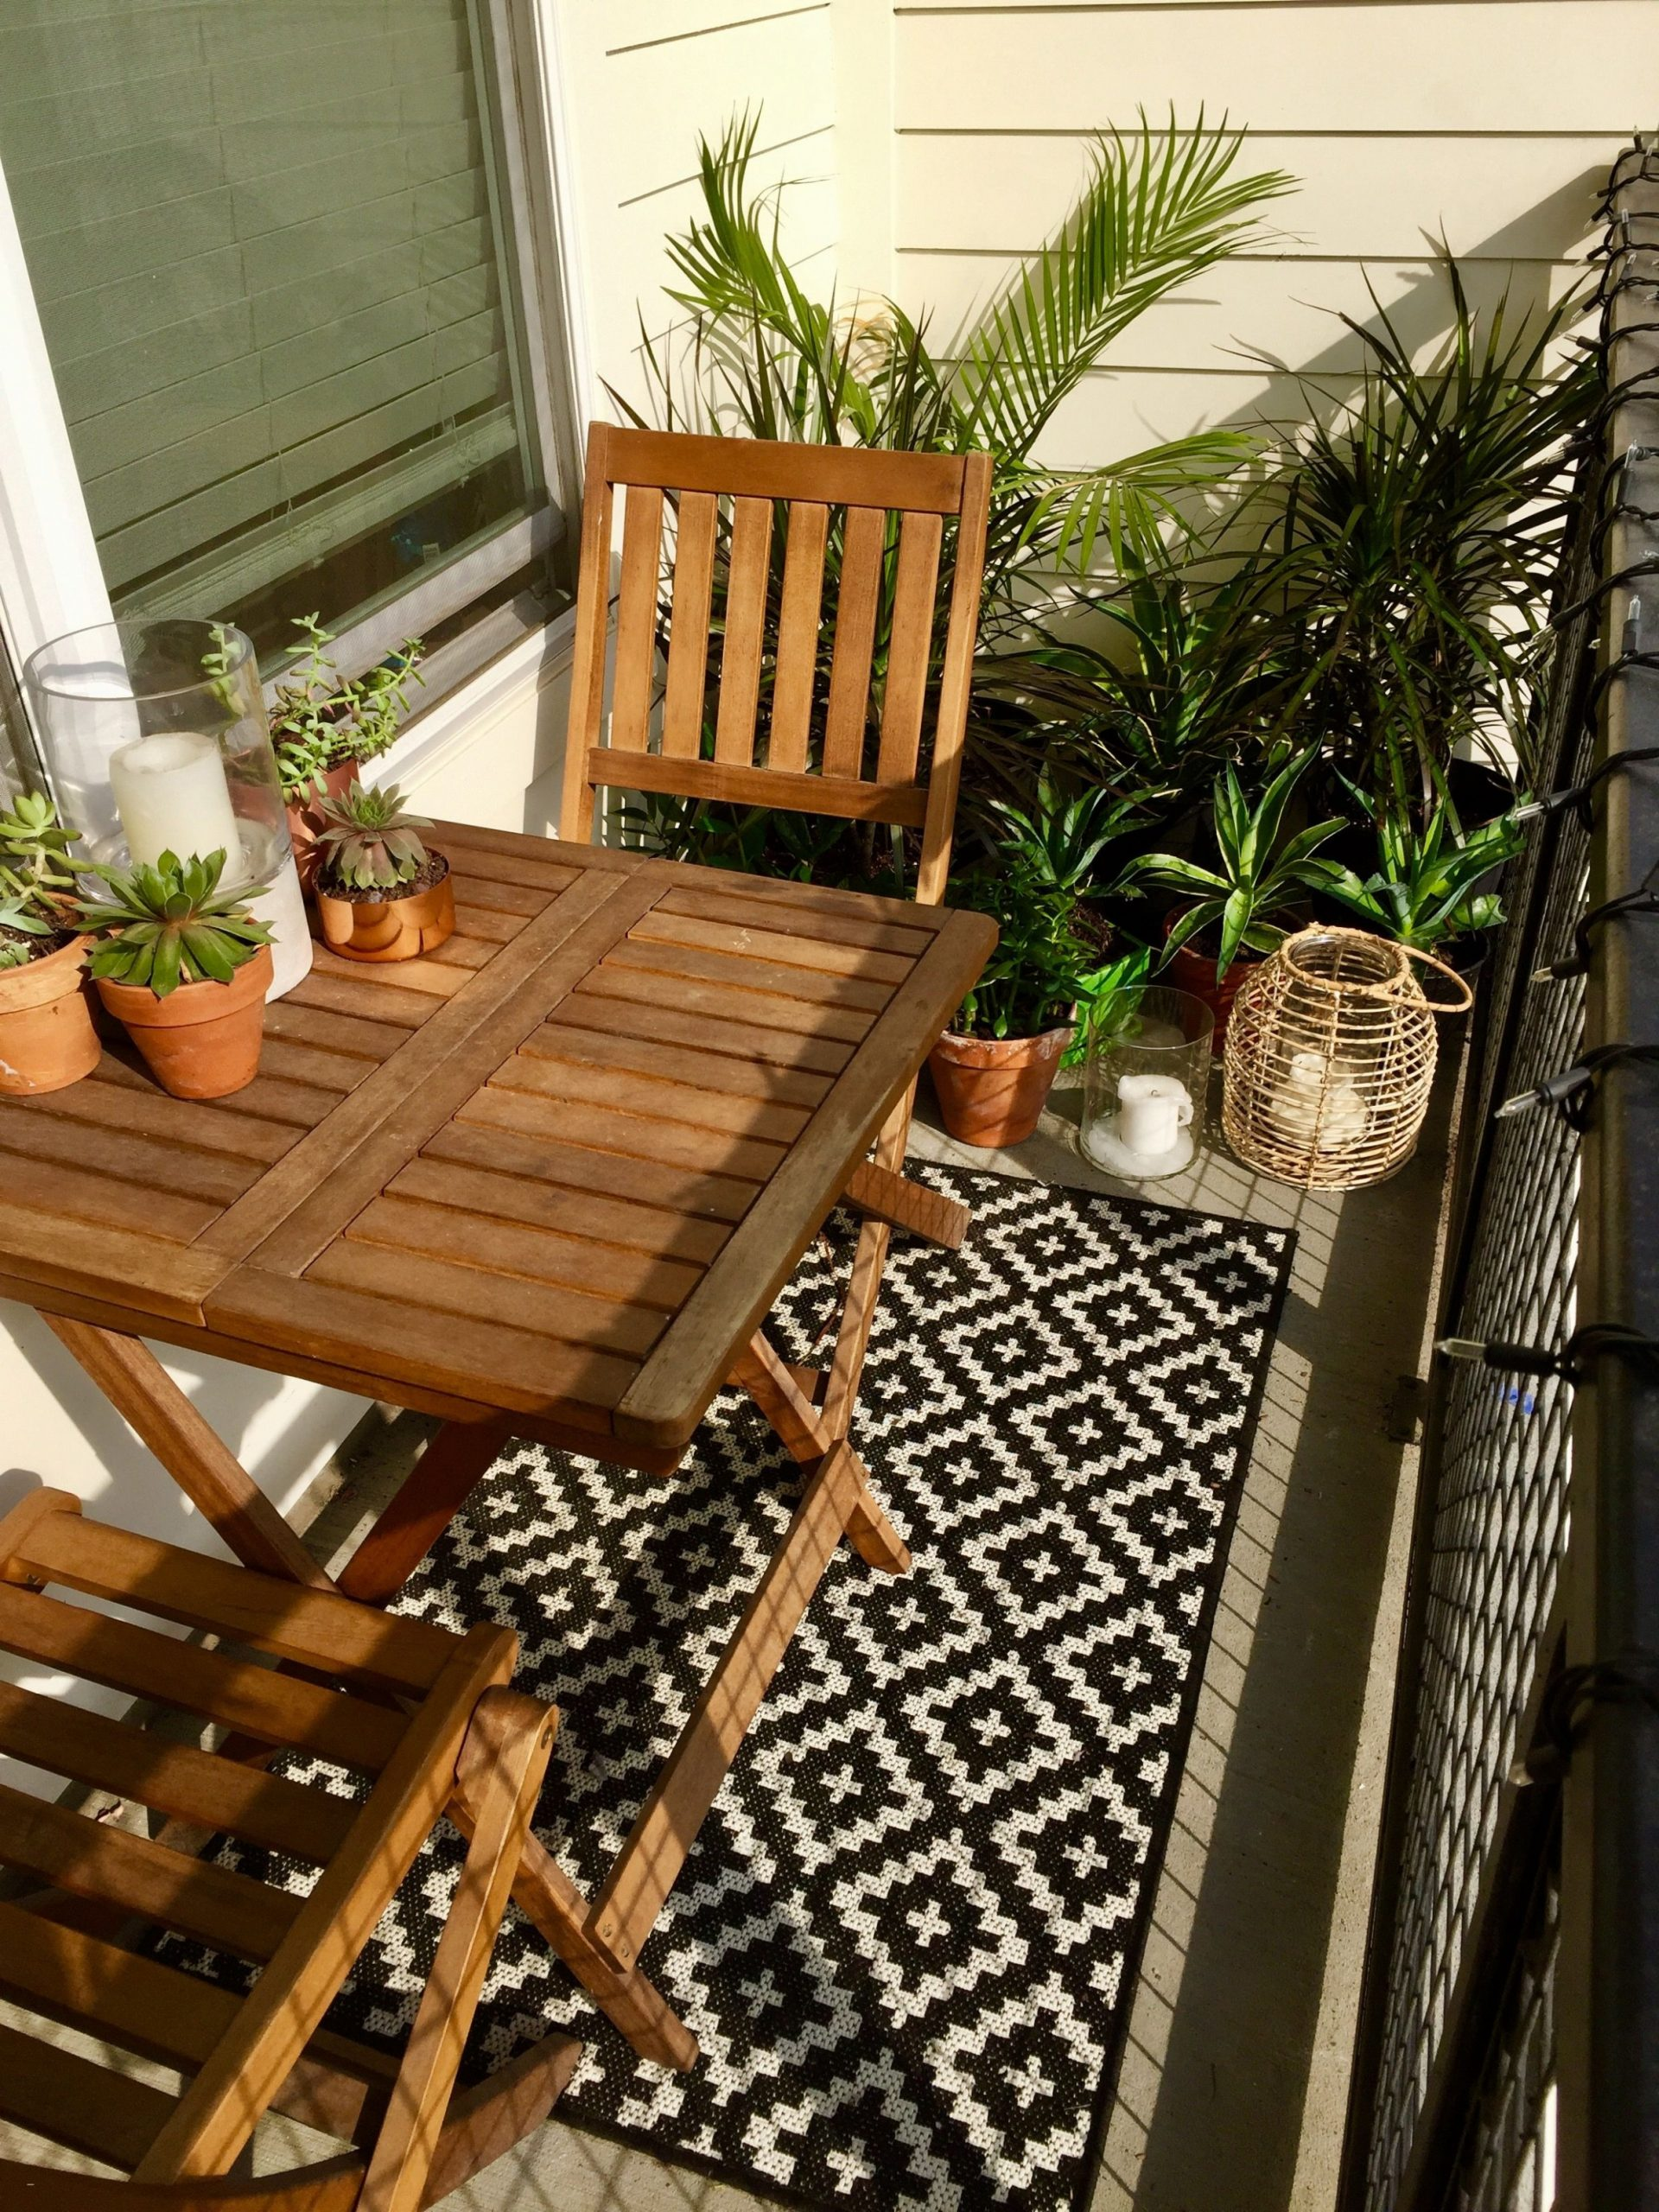 Apartment Patio Decorating Ideas Great Summer Small On A Budget  - Apartment Balcony Ideas On A Budget